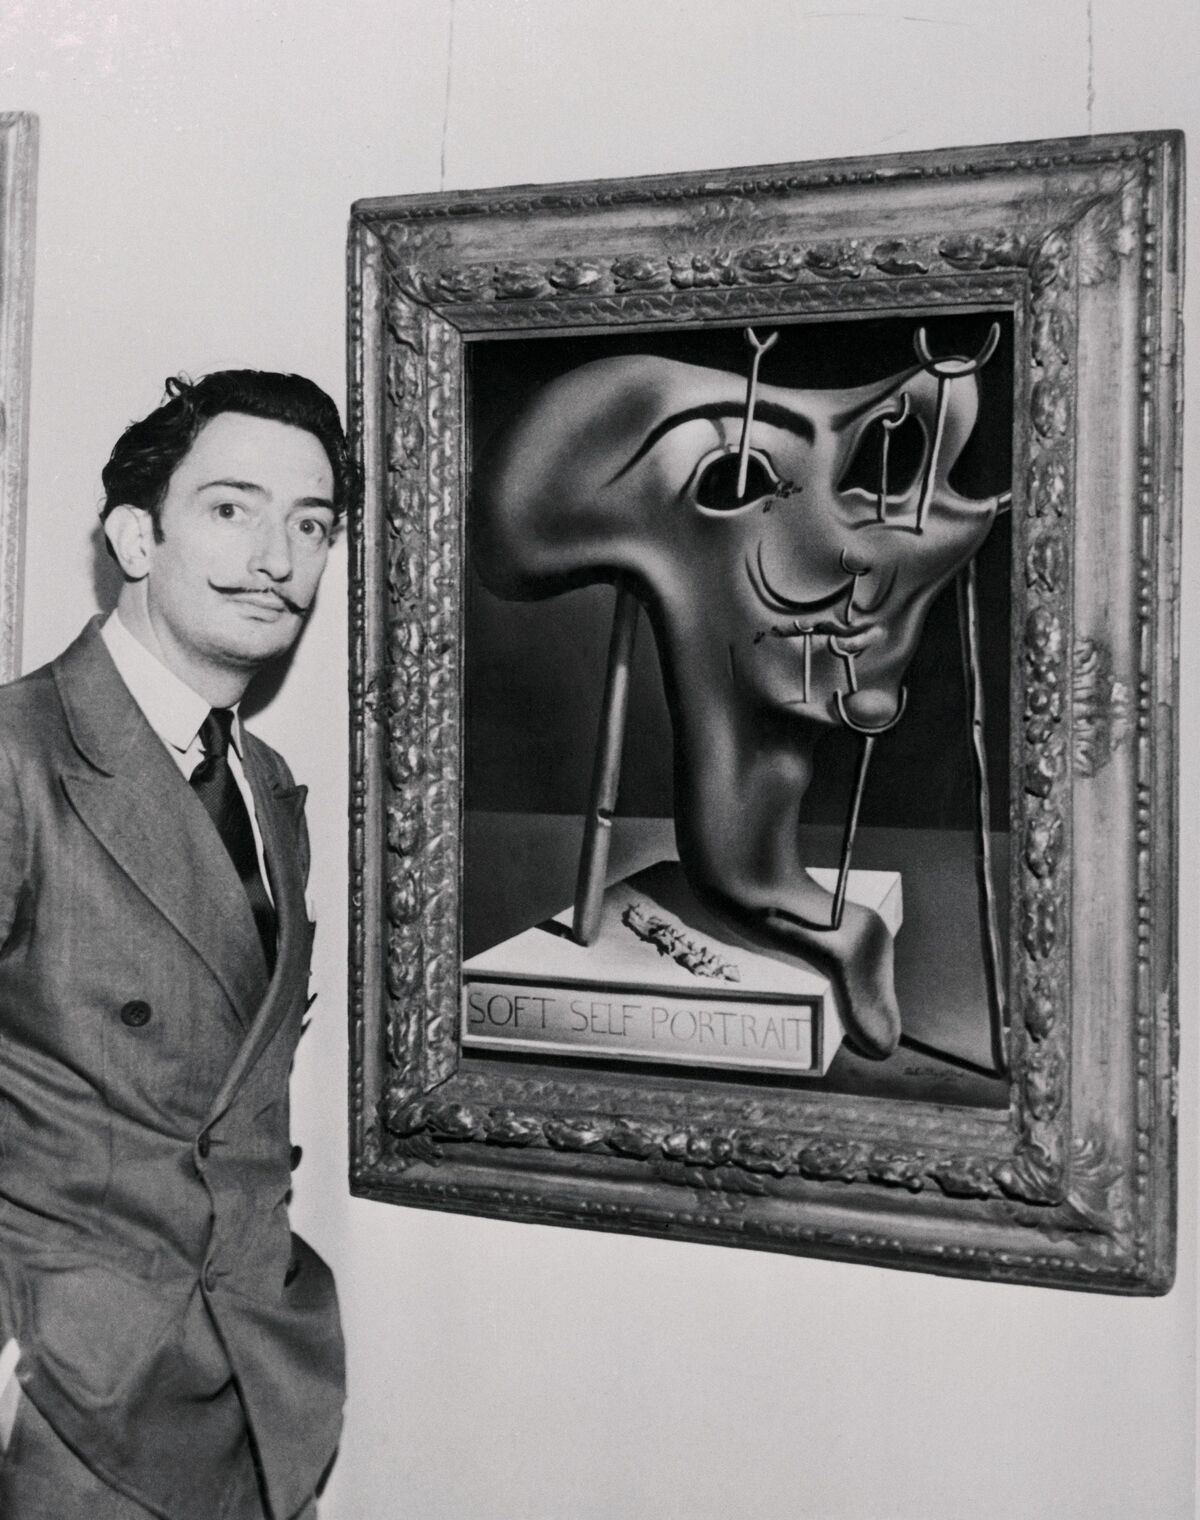 Salvador Dali with his artwork Soft Self-Portrait at the Julien Levy Gallery, 1941. Photo by Bettmann / Contributor via Getty Images.